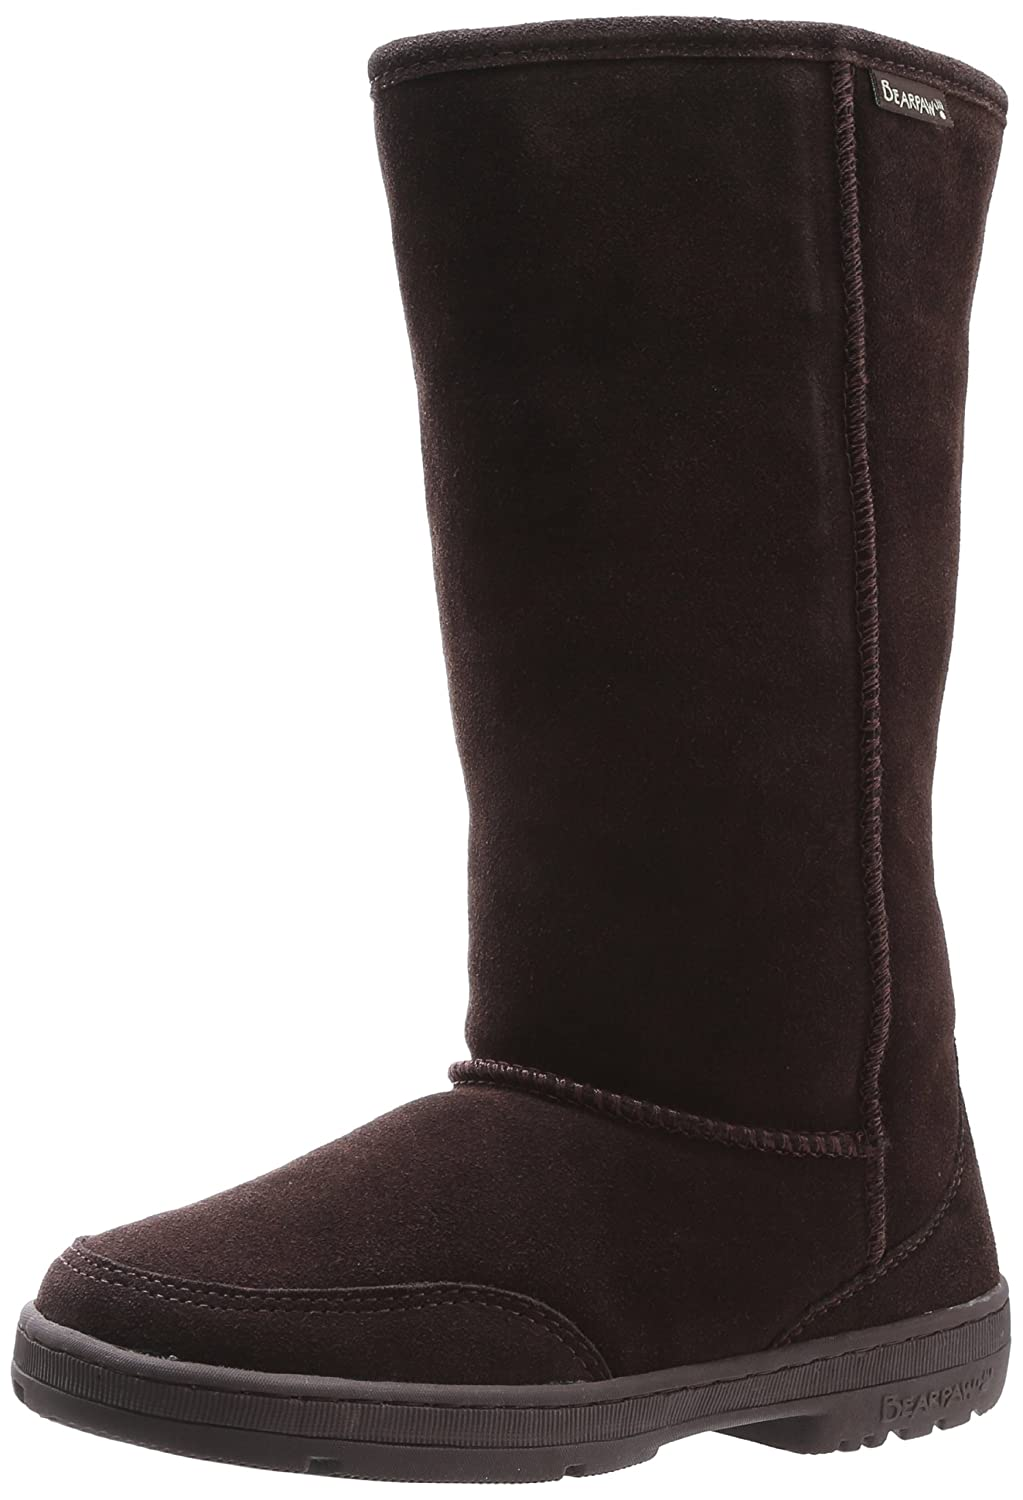 BEARPAW Women's Meadow Mid Calf Boot B01MUCCZ08 42 M EU|Chocolate